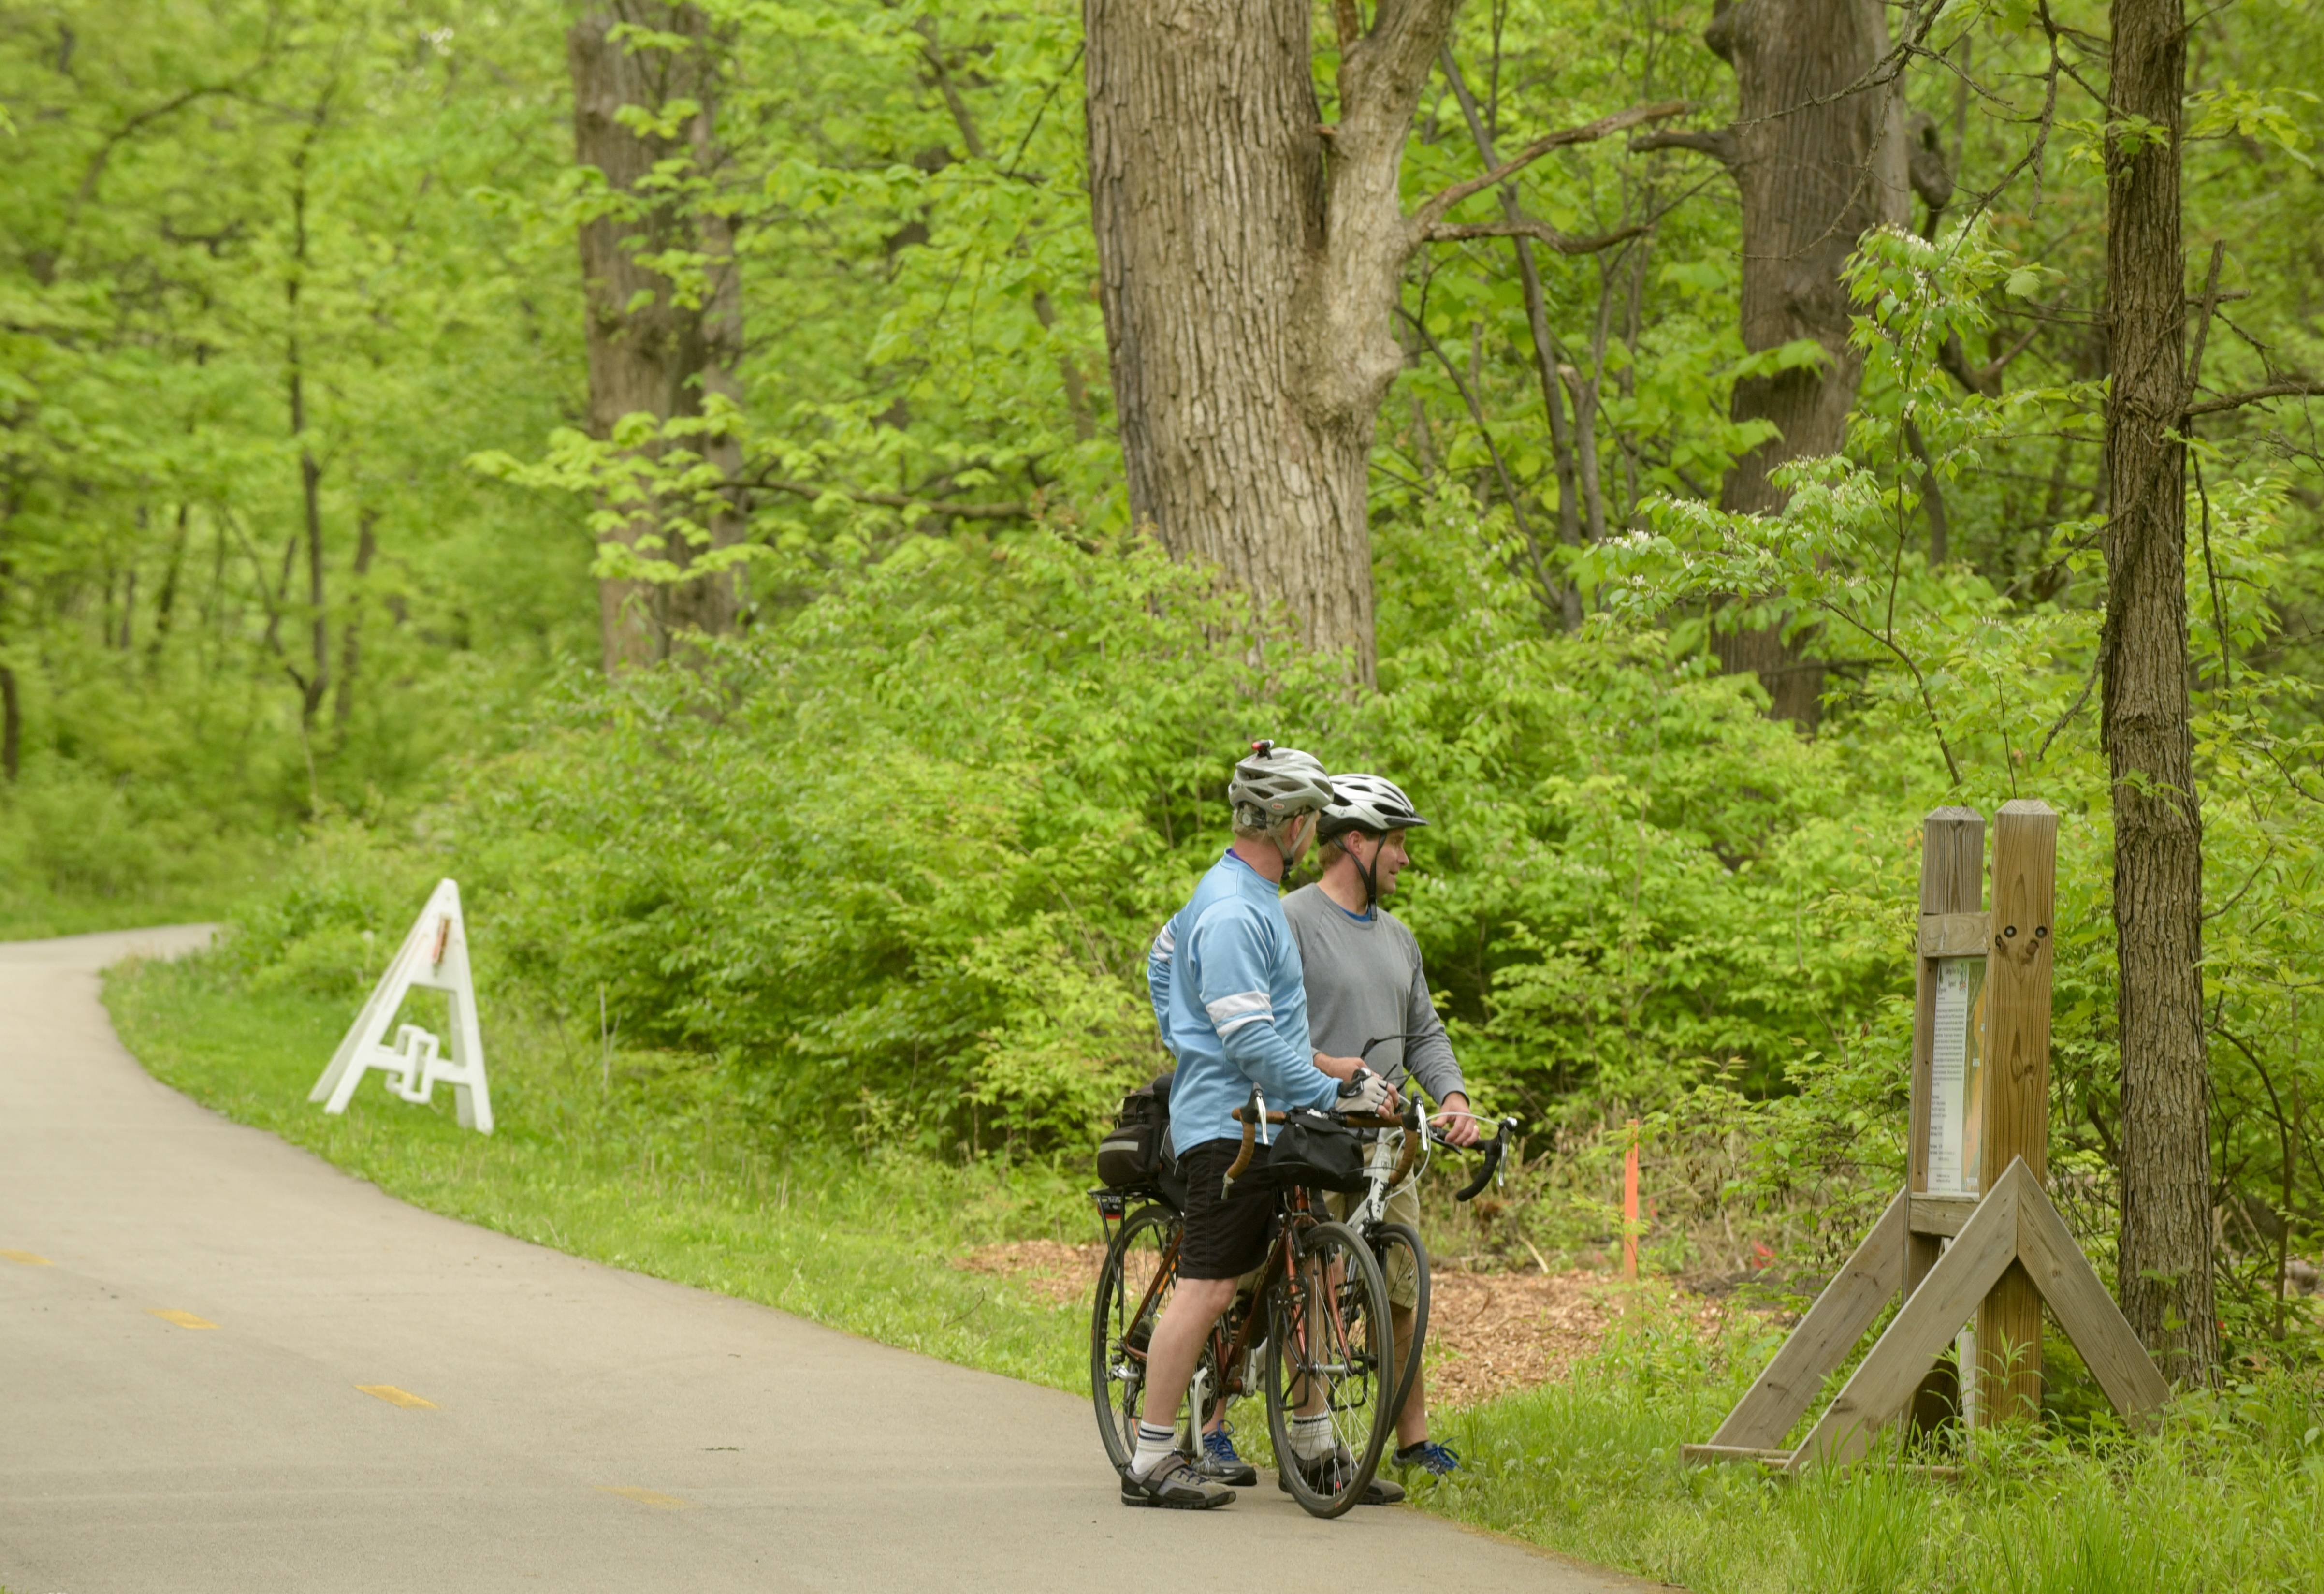 Roughly two-thirds of respondents to the Naperville Park District's community interest and opinion survey said they have a need for outdoor trails, but the survey also found the district's current network of trails largely meets the need.